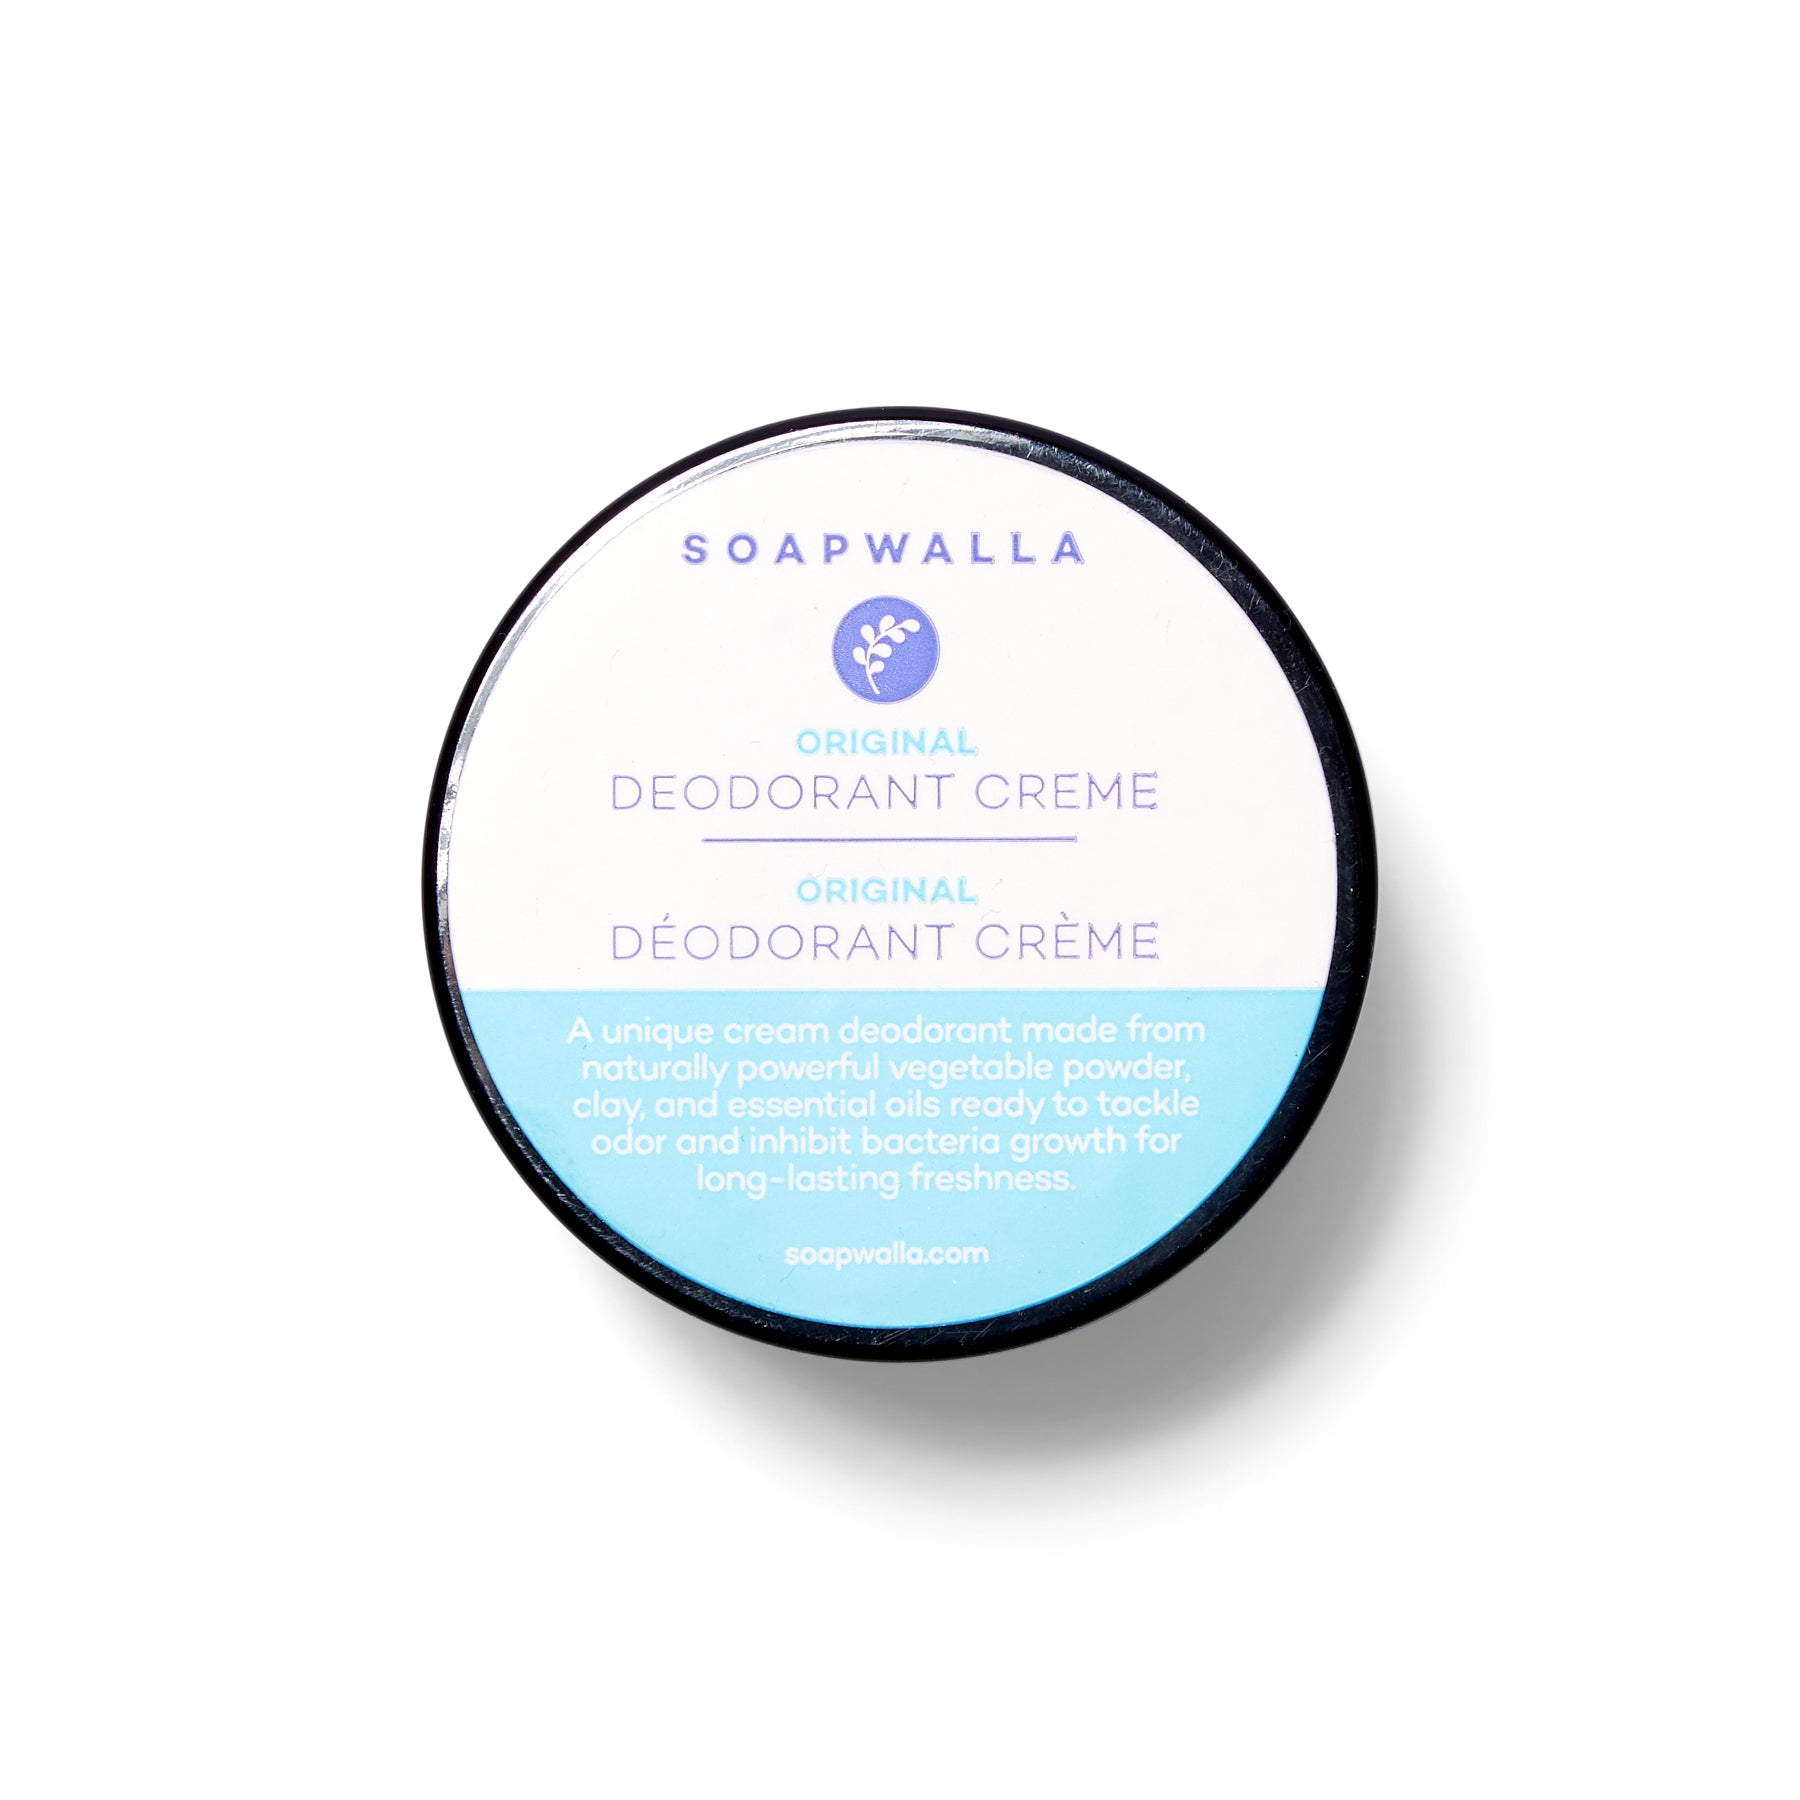 Soapwalla Deodorant Cream / Original & Sensitive Formula